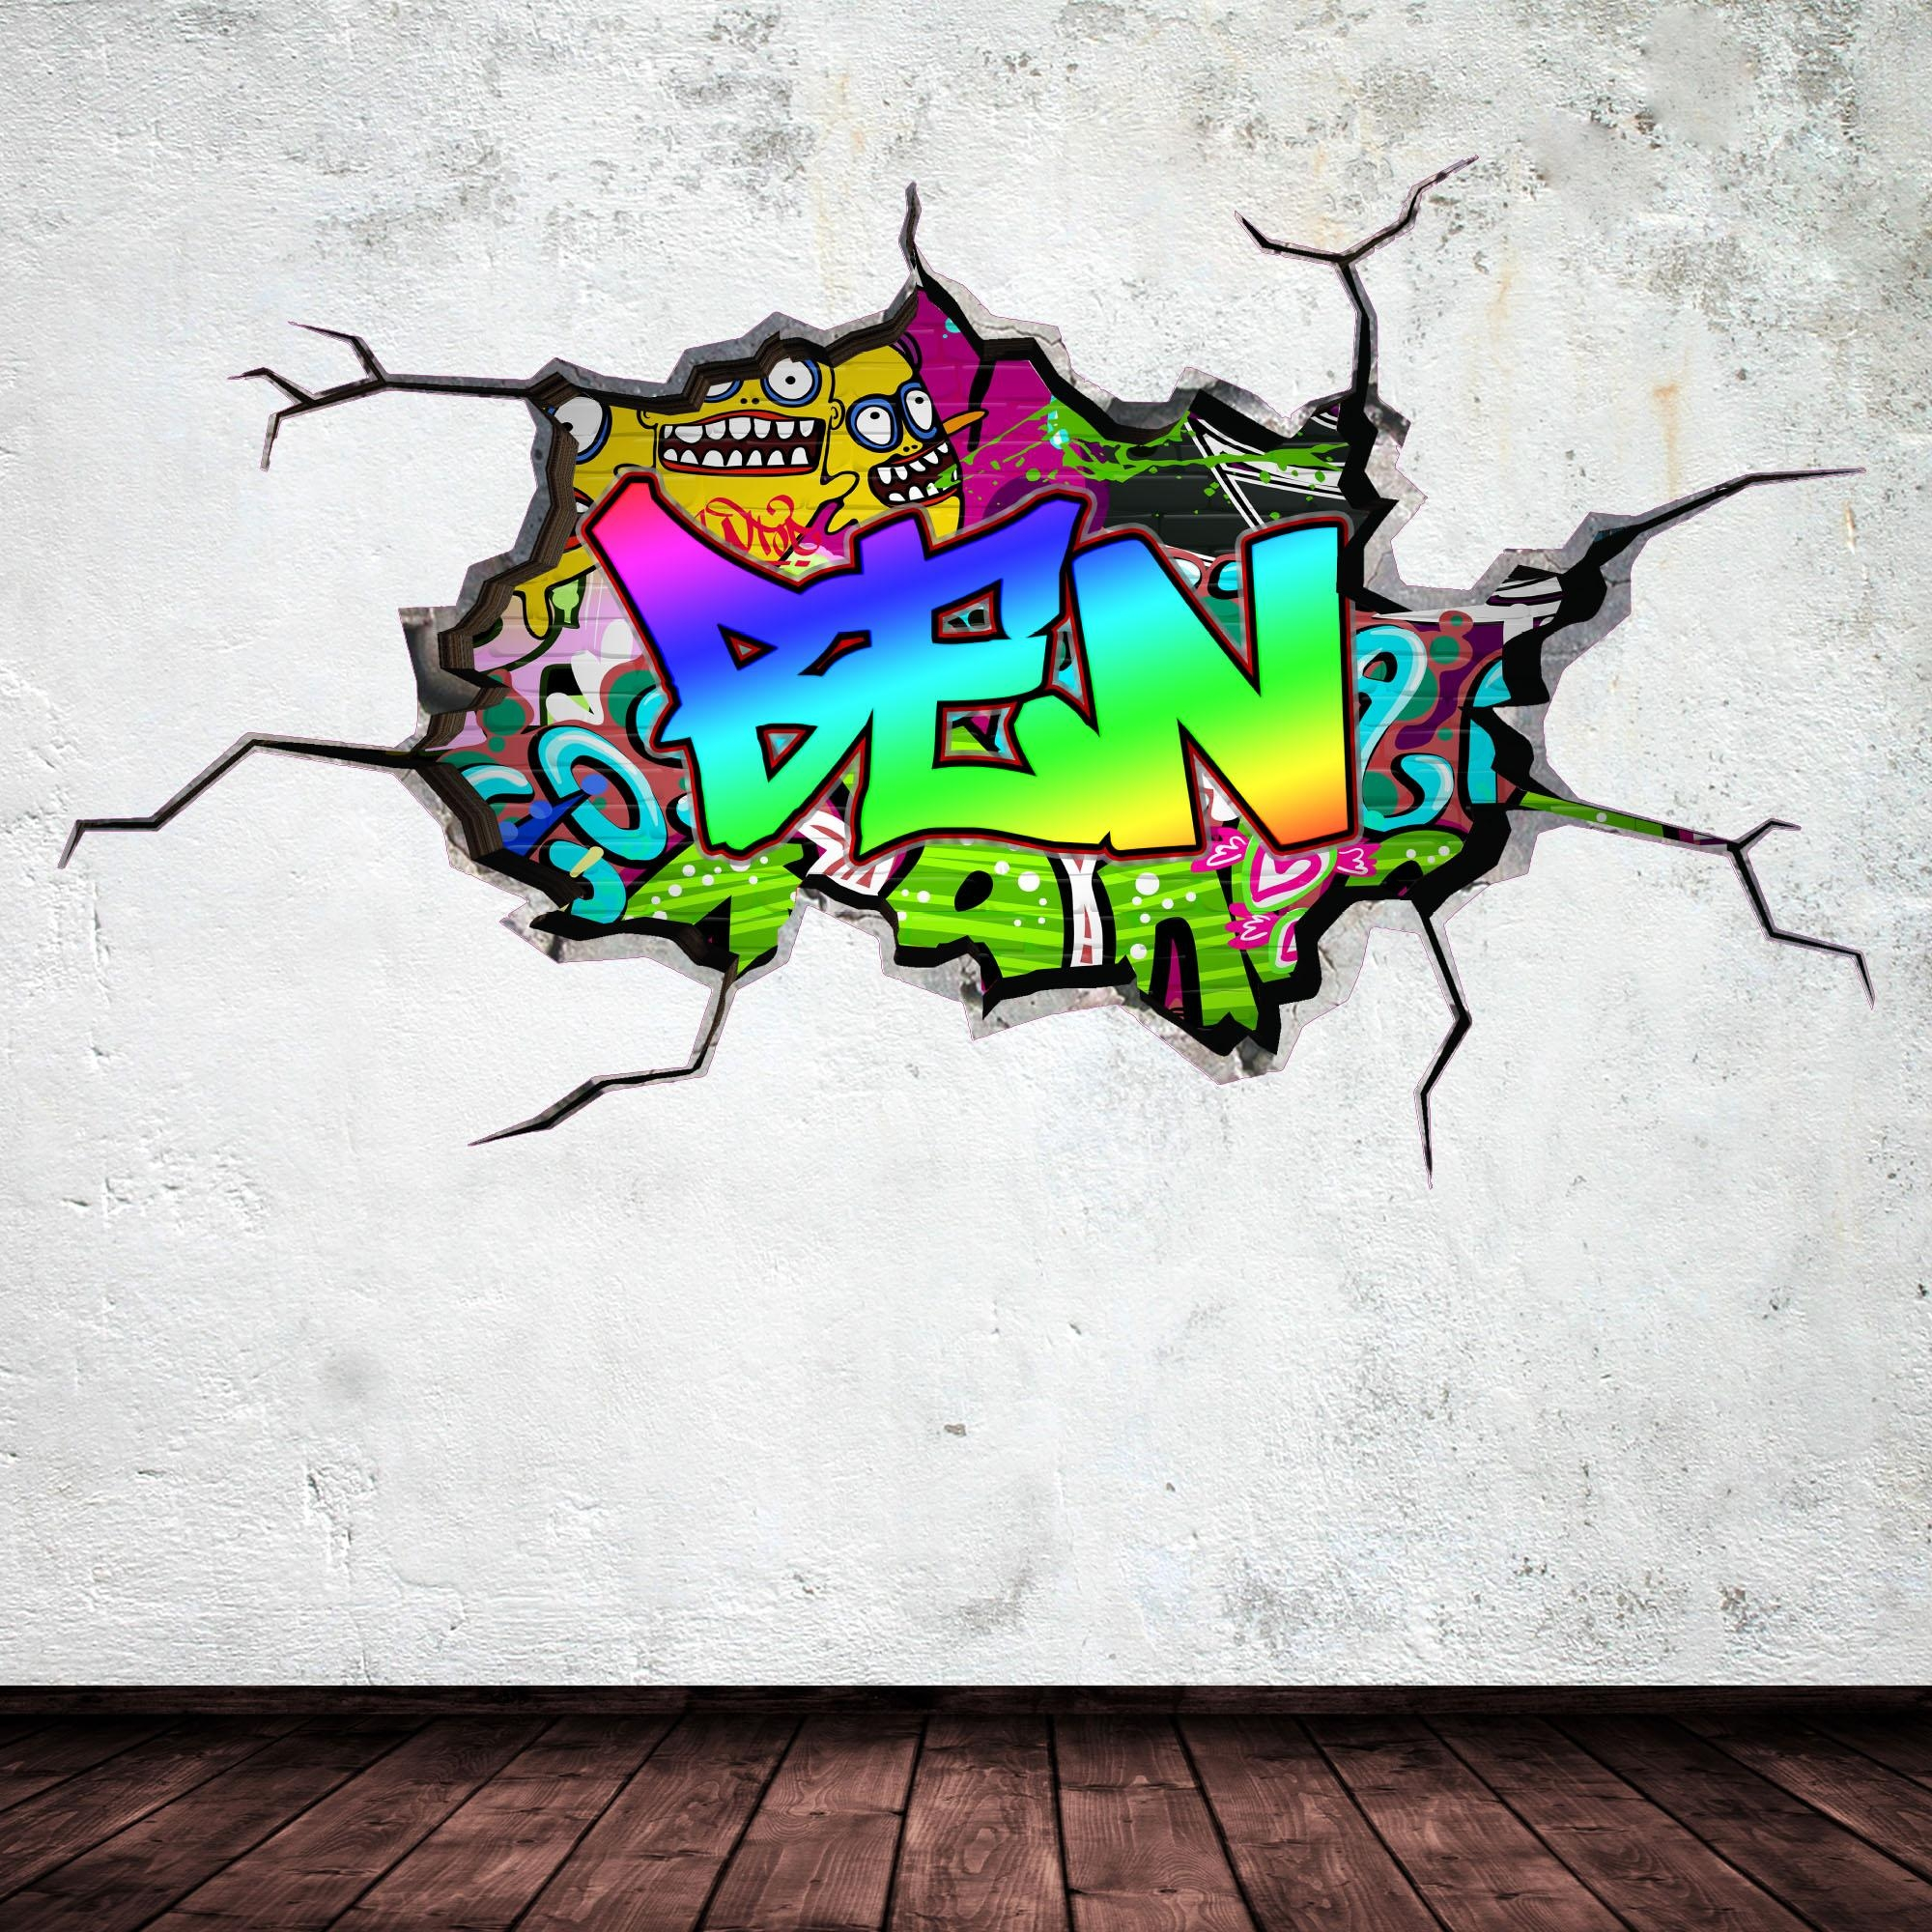 Full Colour Personalised 3D Graffiti Name Cracked Wall Art Throughout Graffiti Wall Art Stickers (Image 5 of 20)